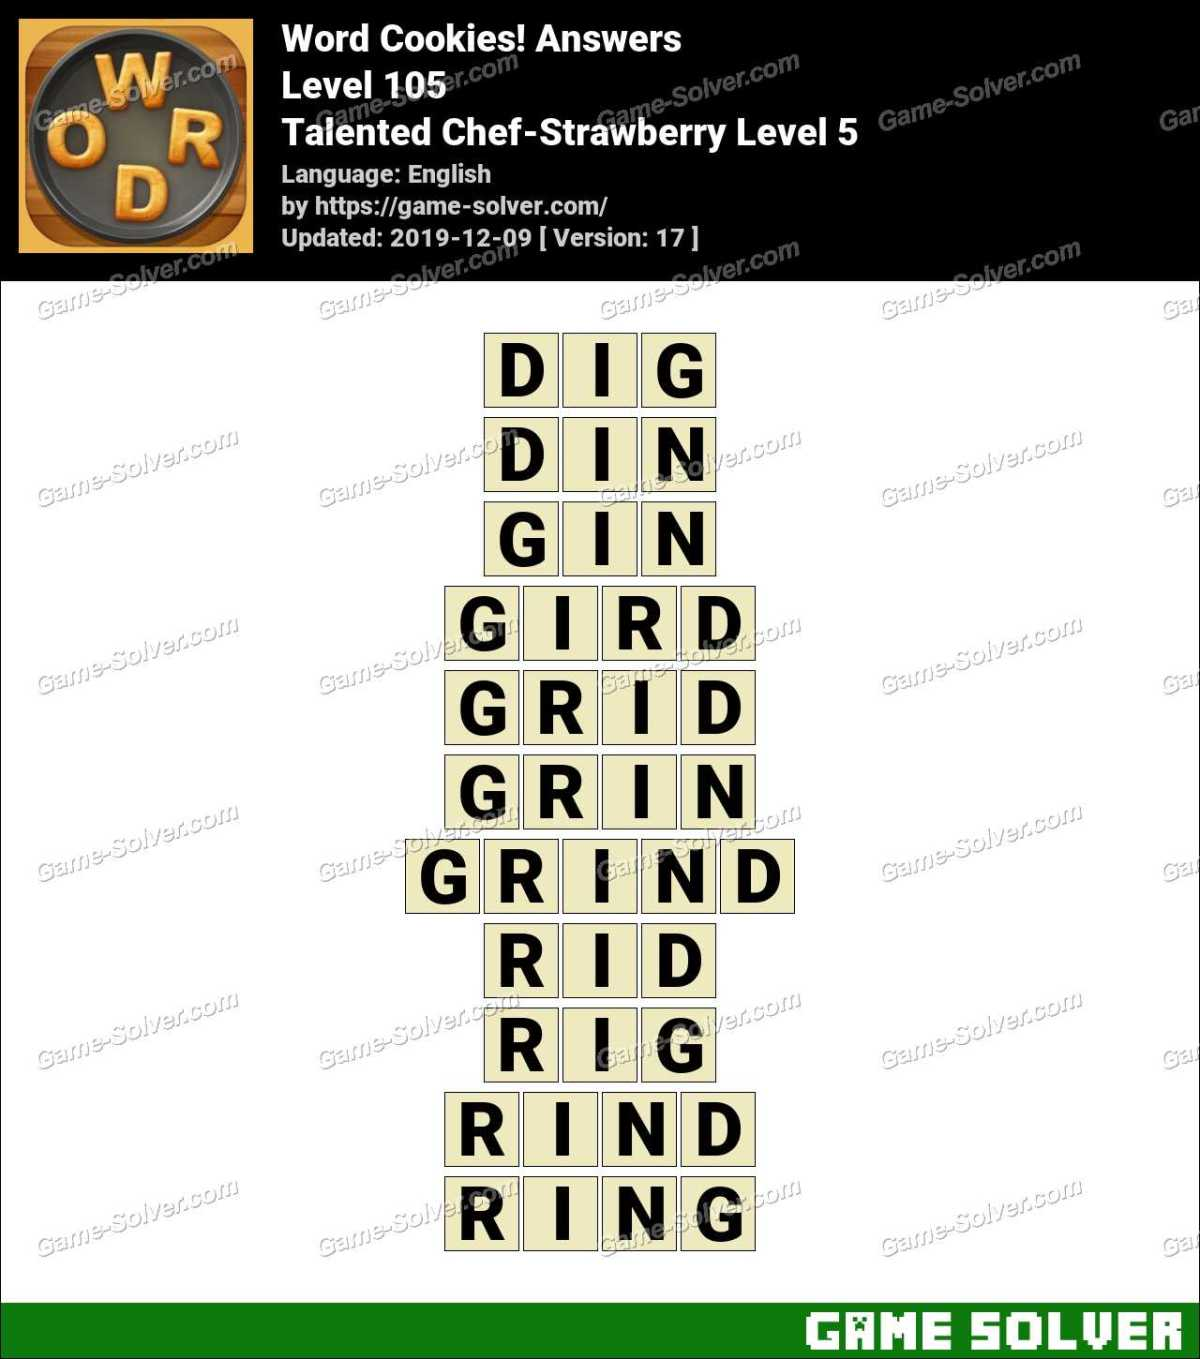 Word Cookies Talented Chef-Strawberry Level 5 Answers